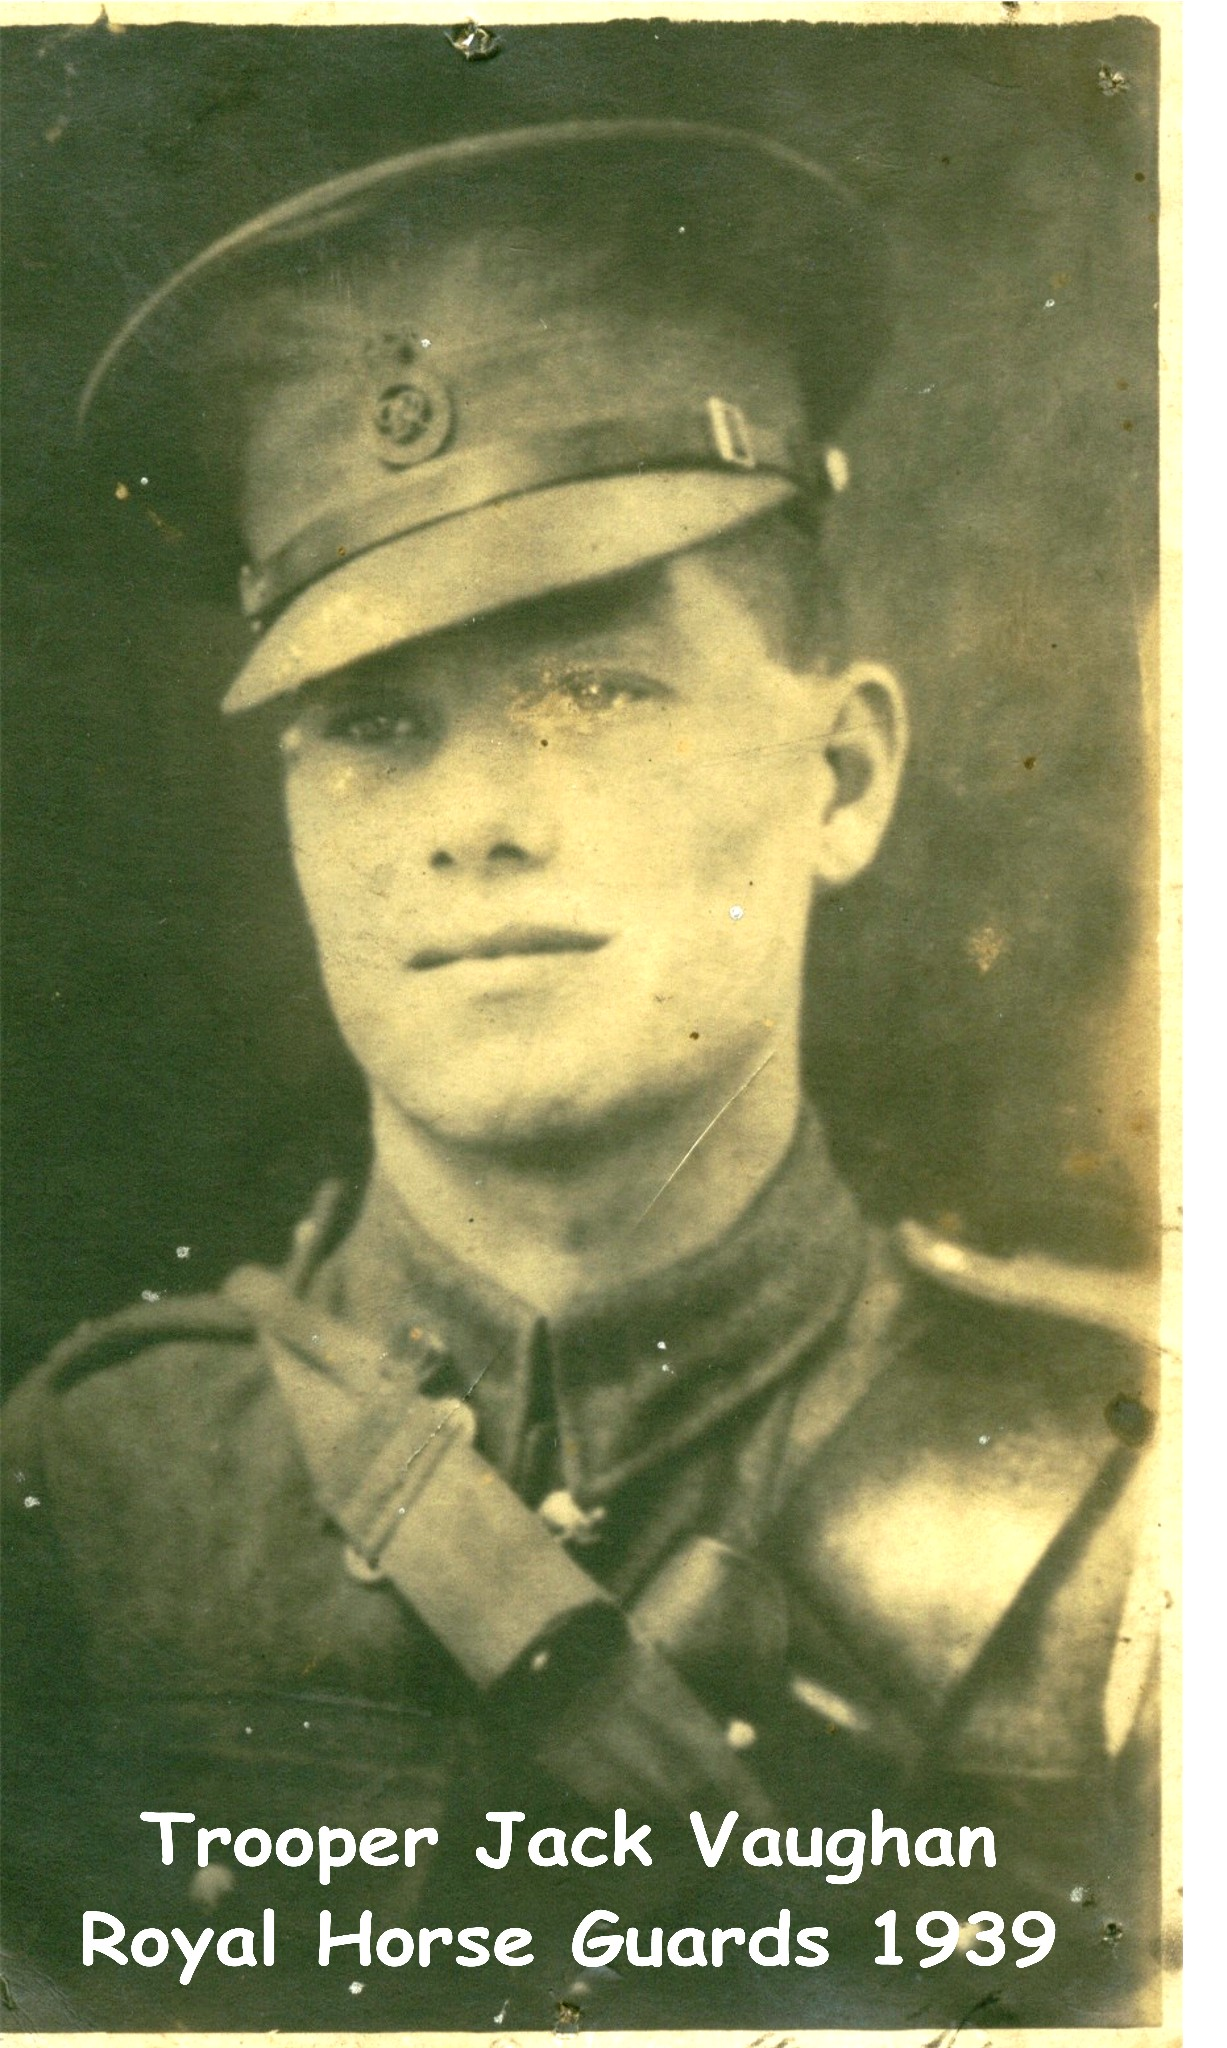 Trooper Jack Vaughan 1939